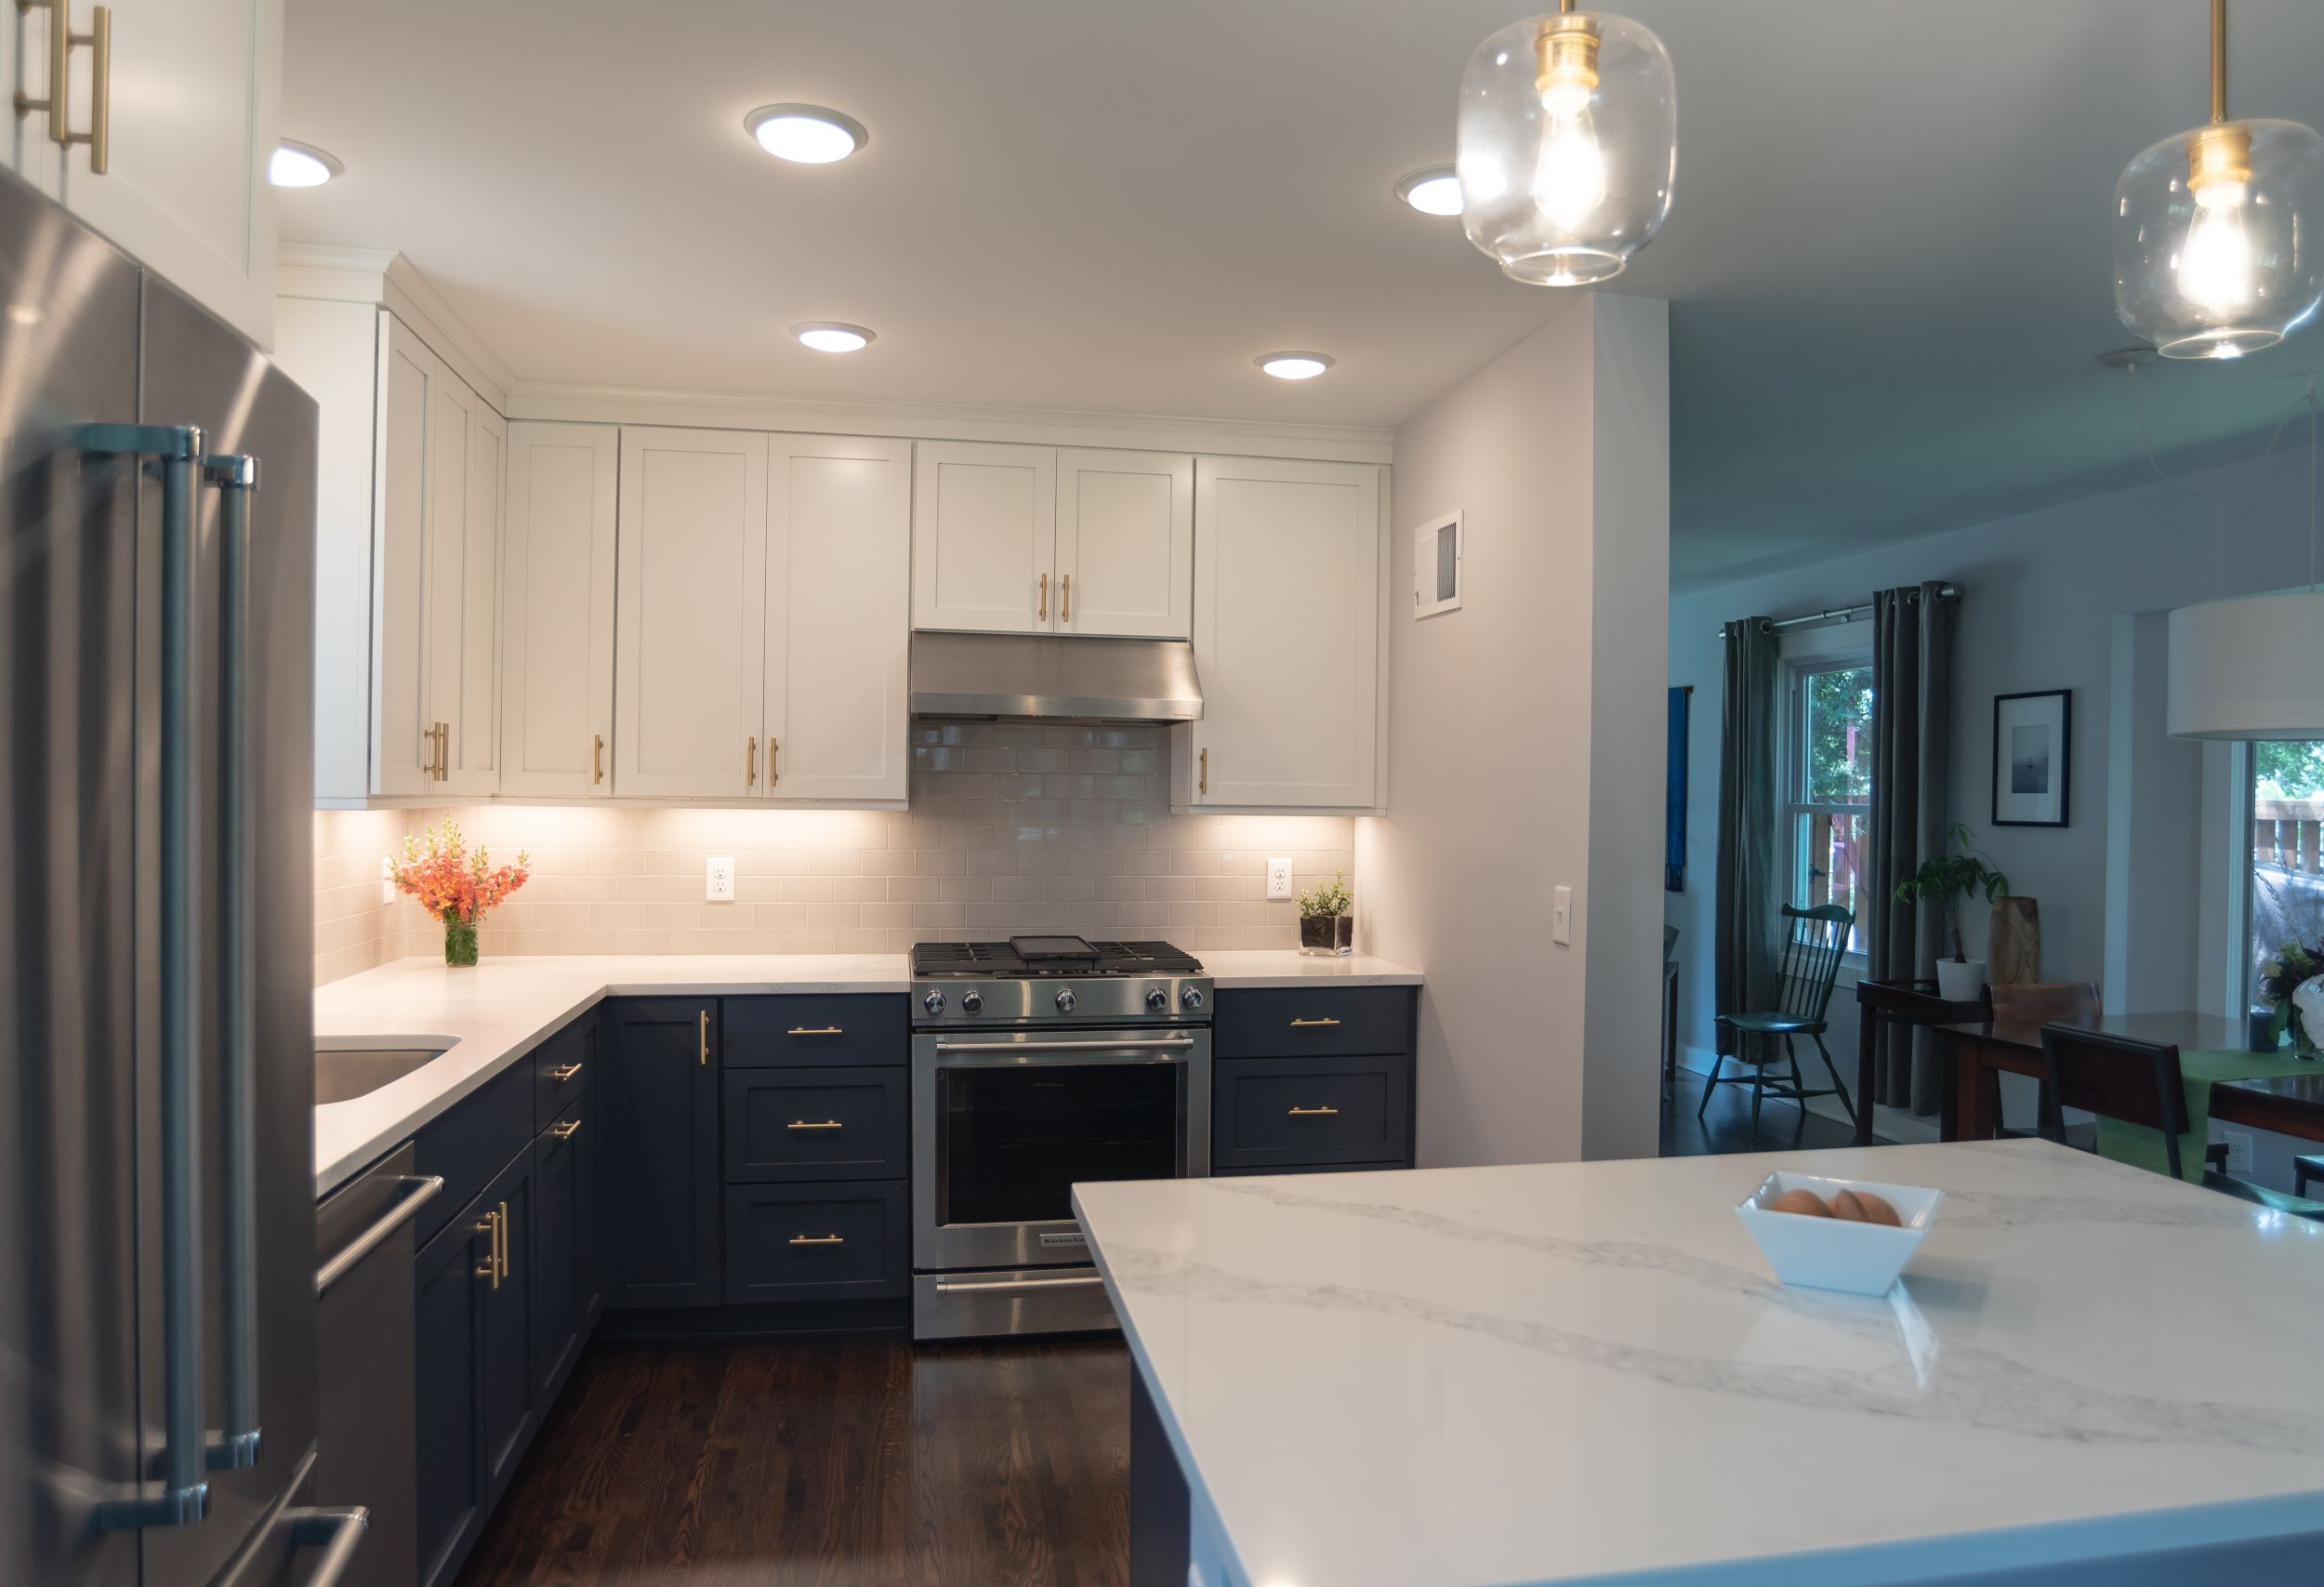 Kitchen remodel with large center island, blue lowers, white uppers, new wood flooring, and new appliances.